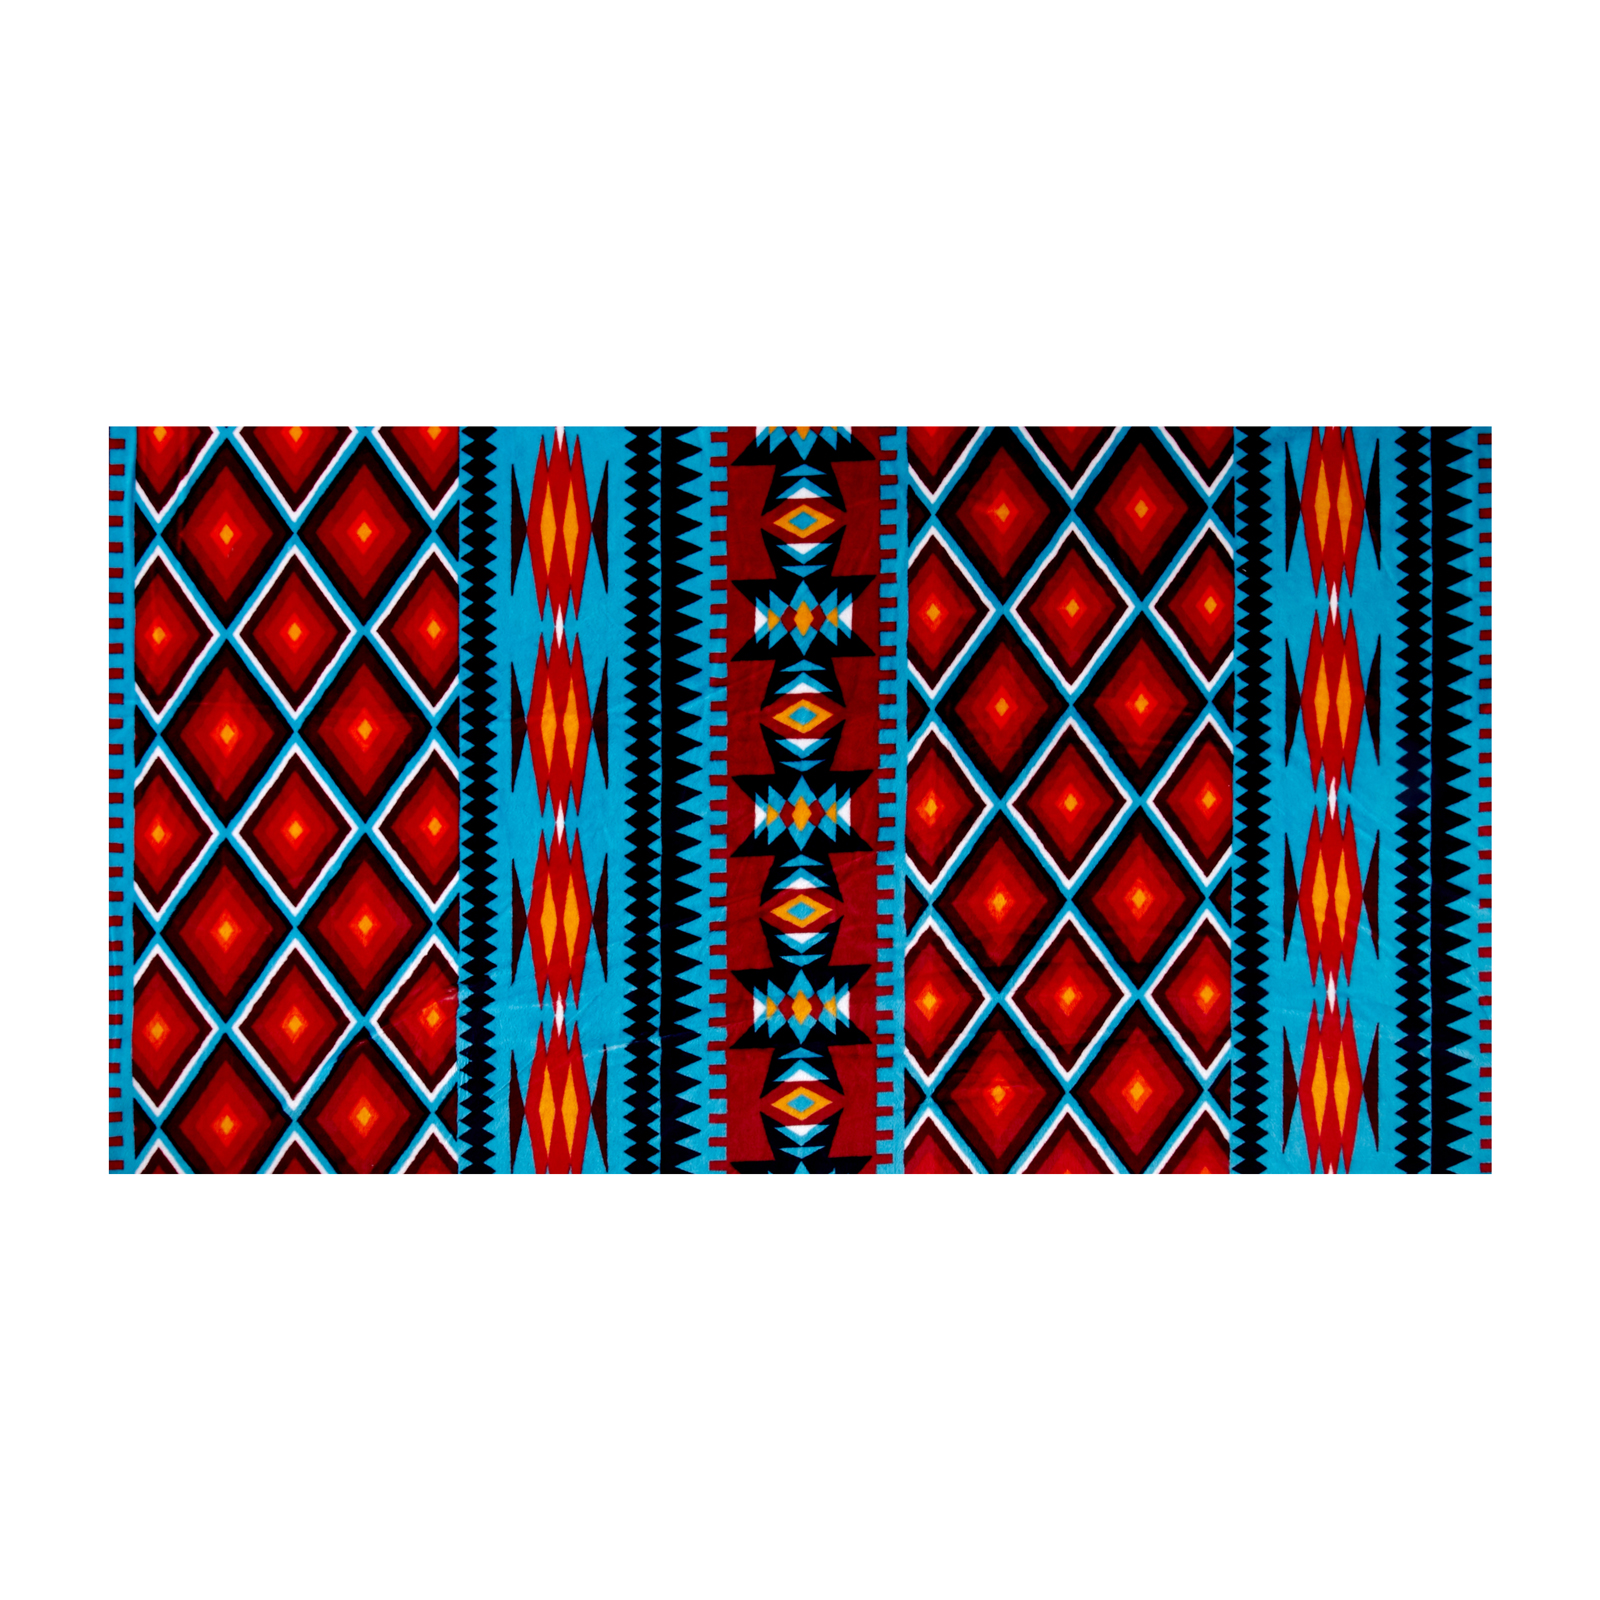 Shannon Minky Cuddle Prints Aztec Dark Turquoise Fabric by Shannon in USA